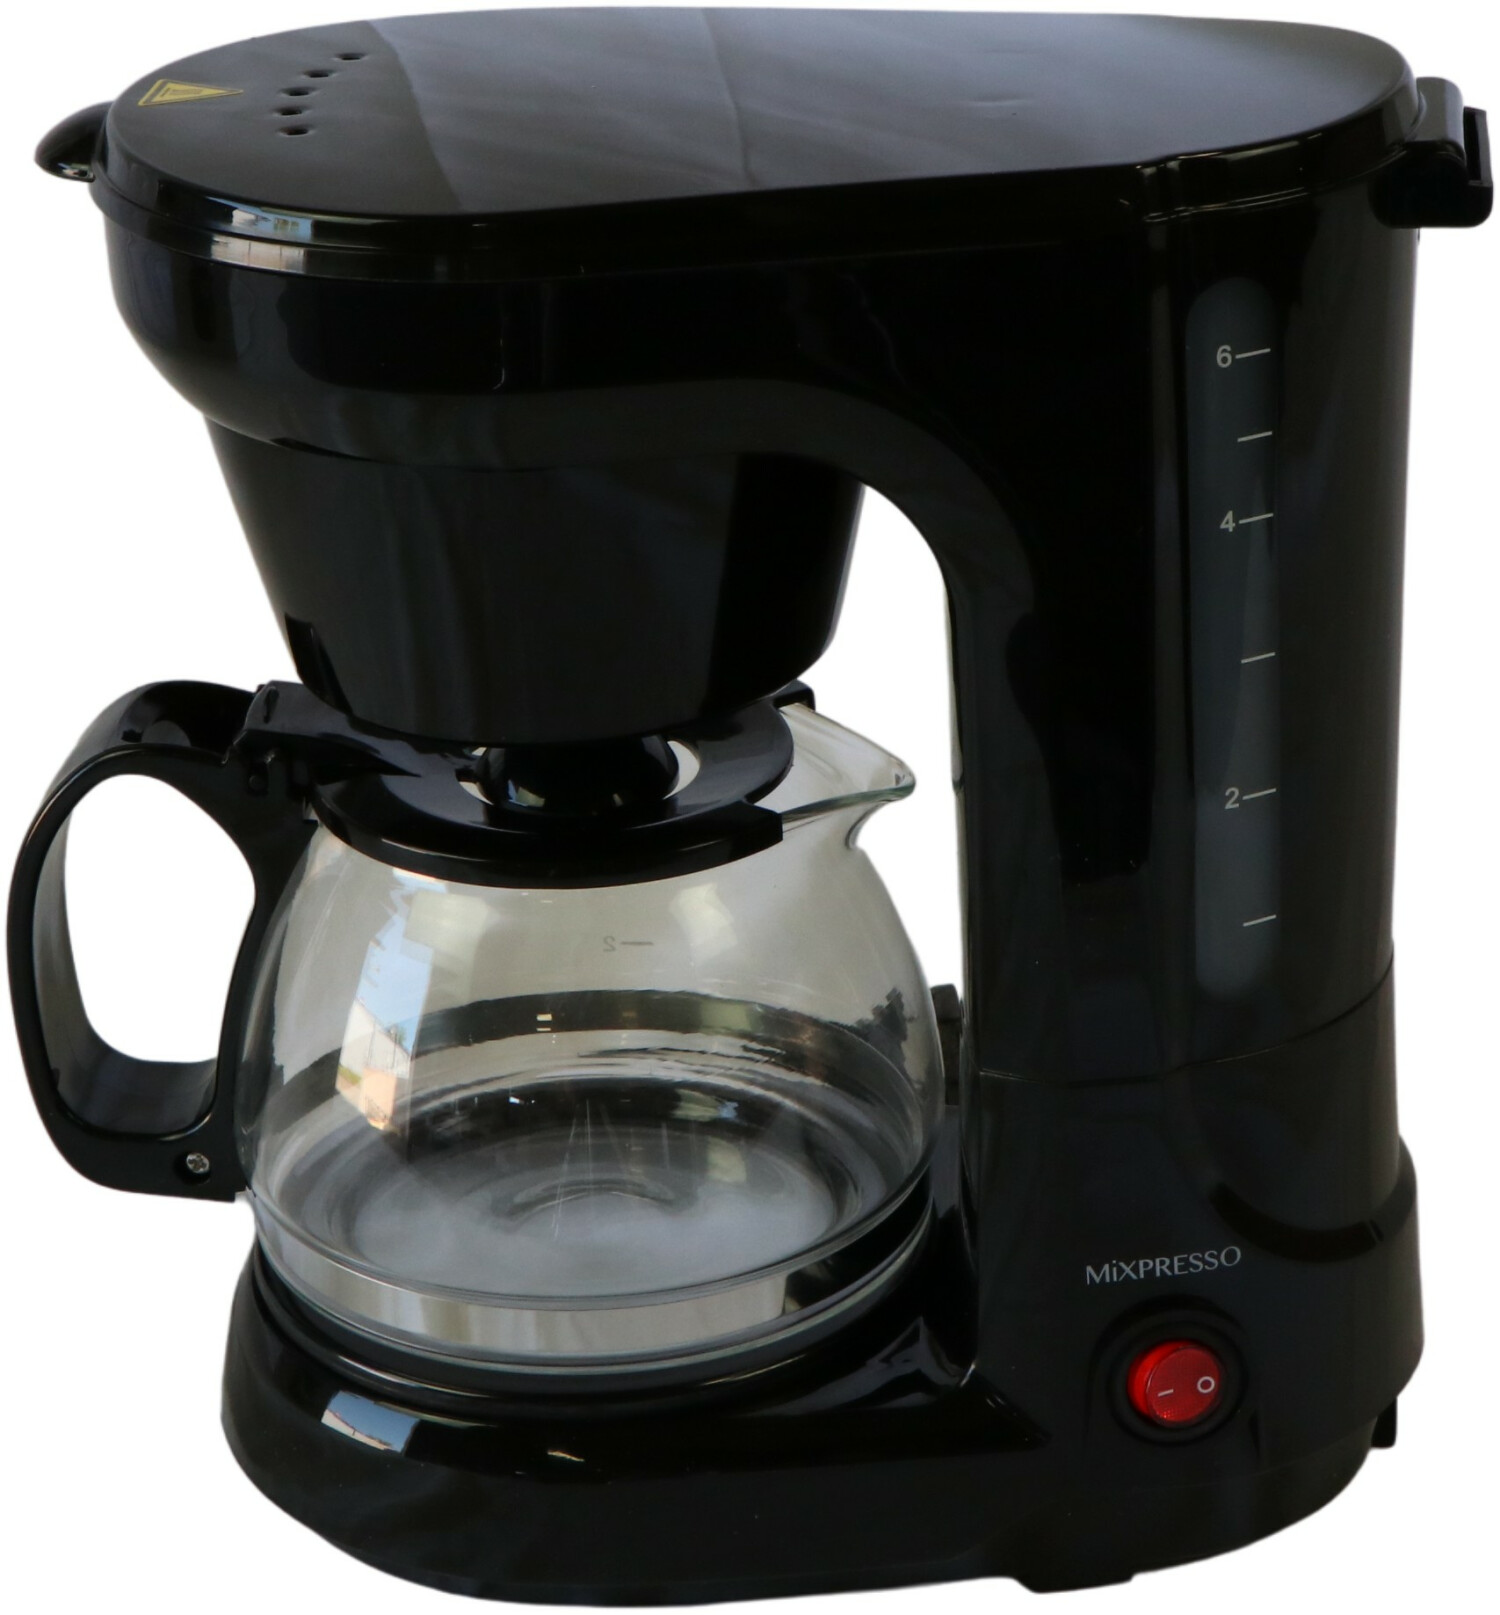 Mixpresso 6 Cup Coffee Maker Machine COMINHKPR137487